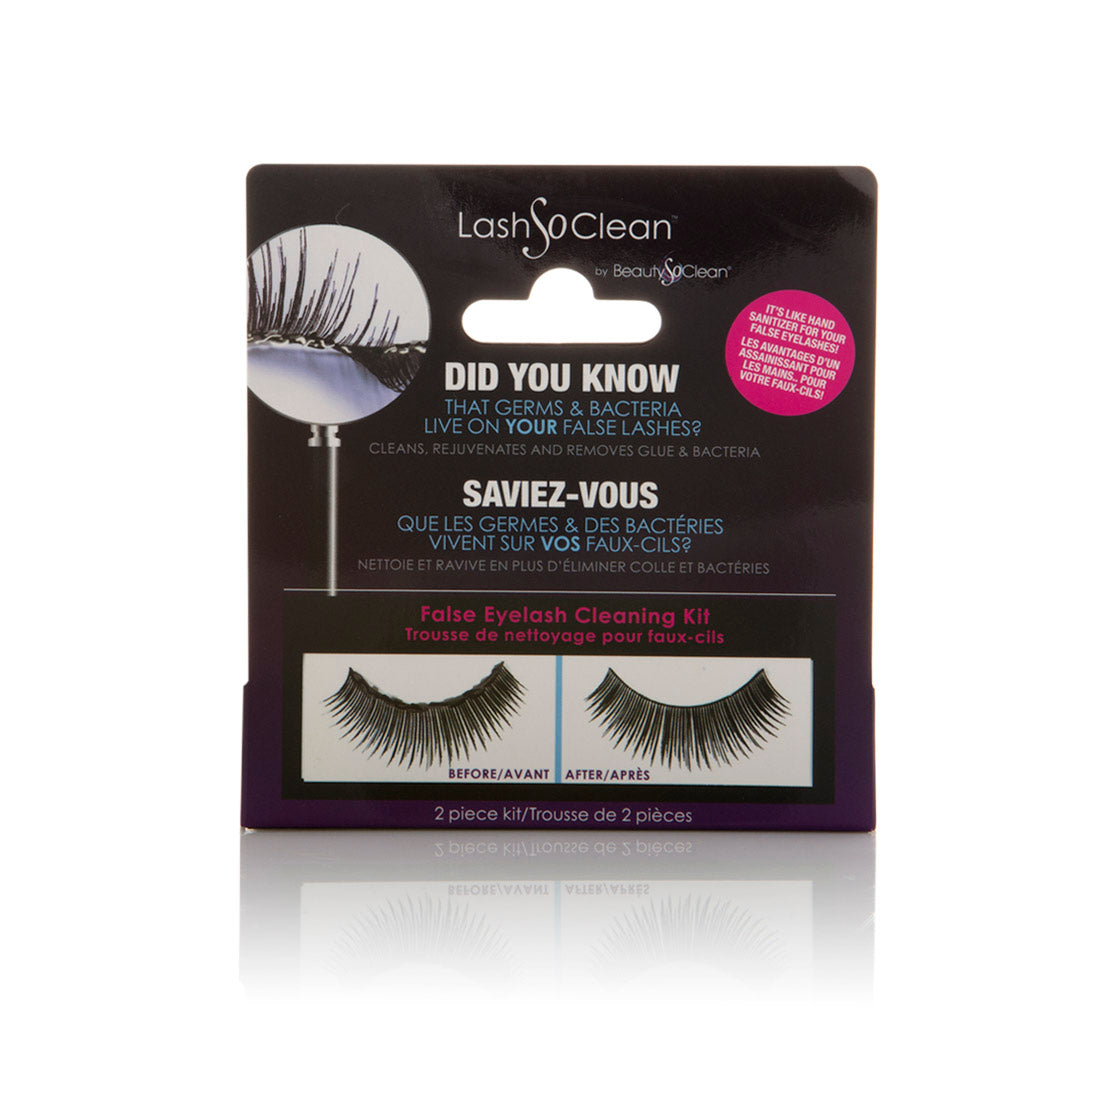 LashSoClean by BeautySoClean False Eyelash Cleaning Kit